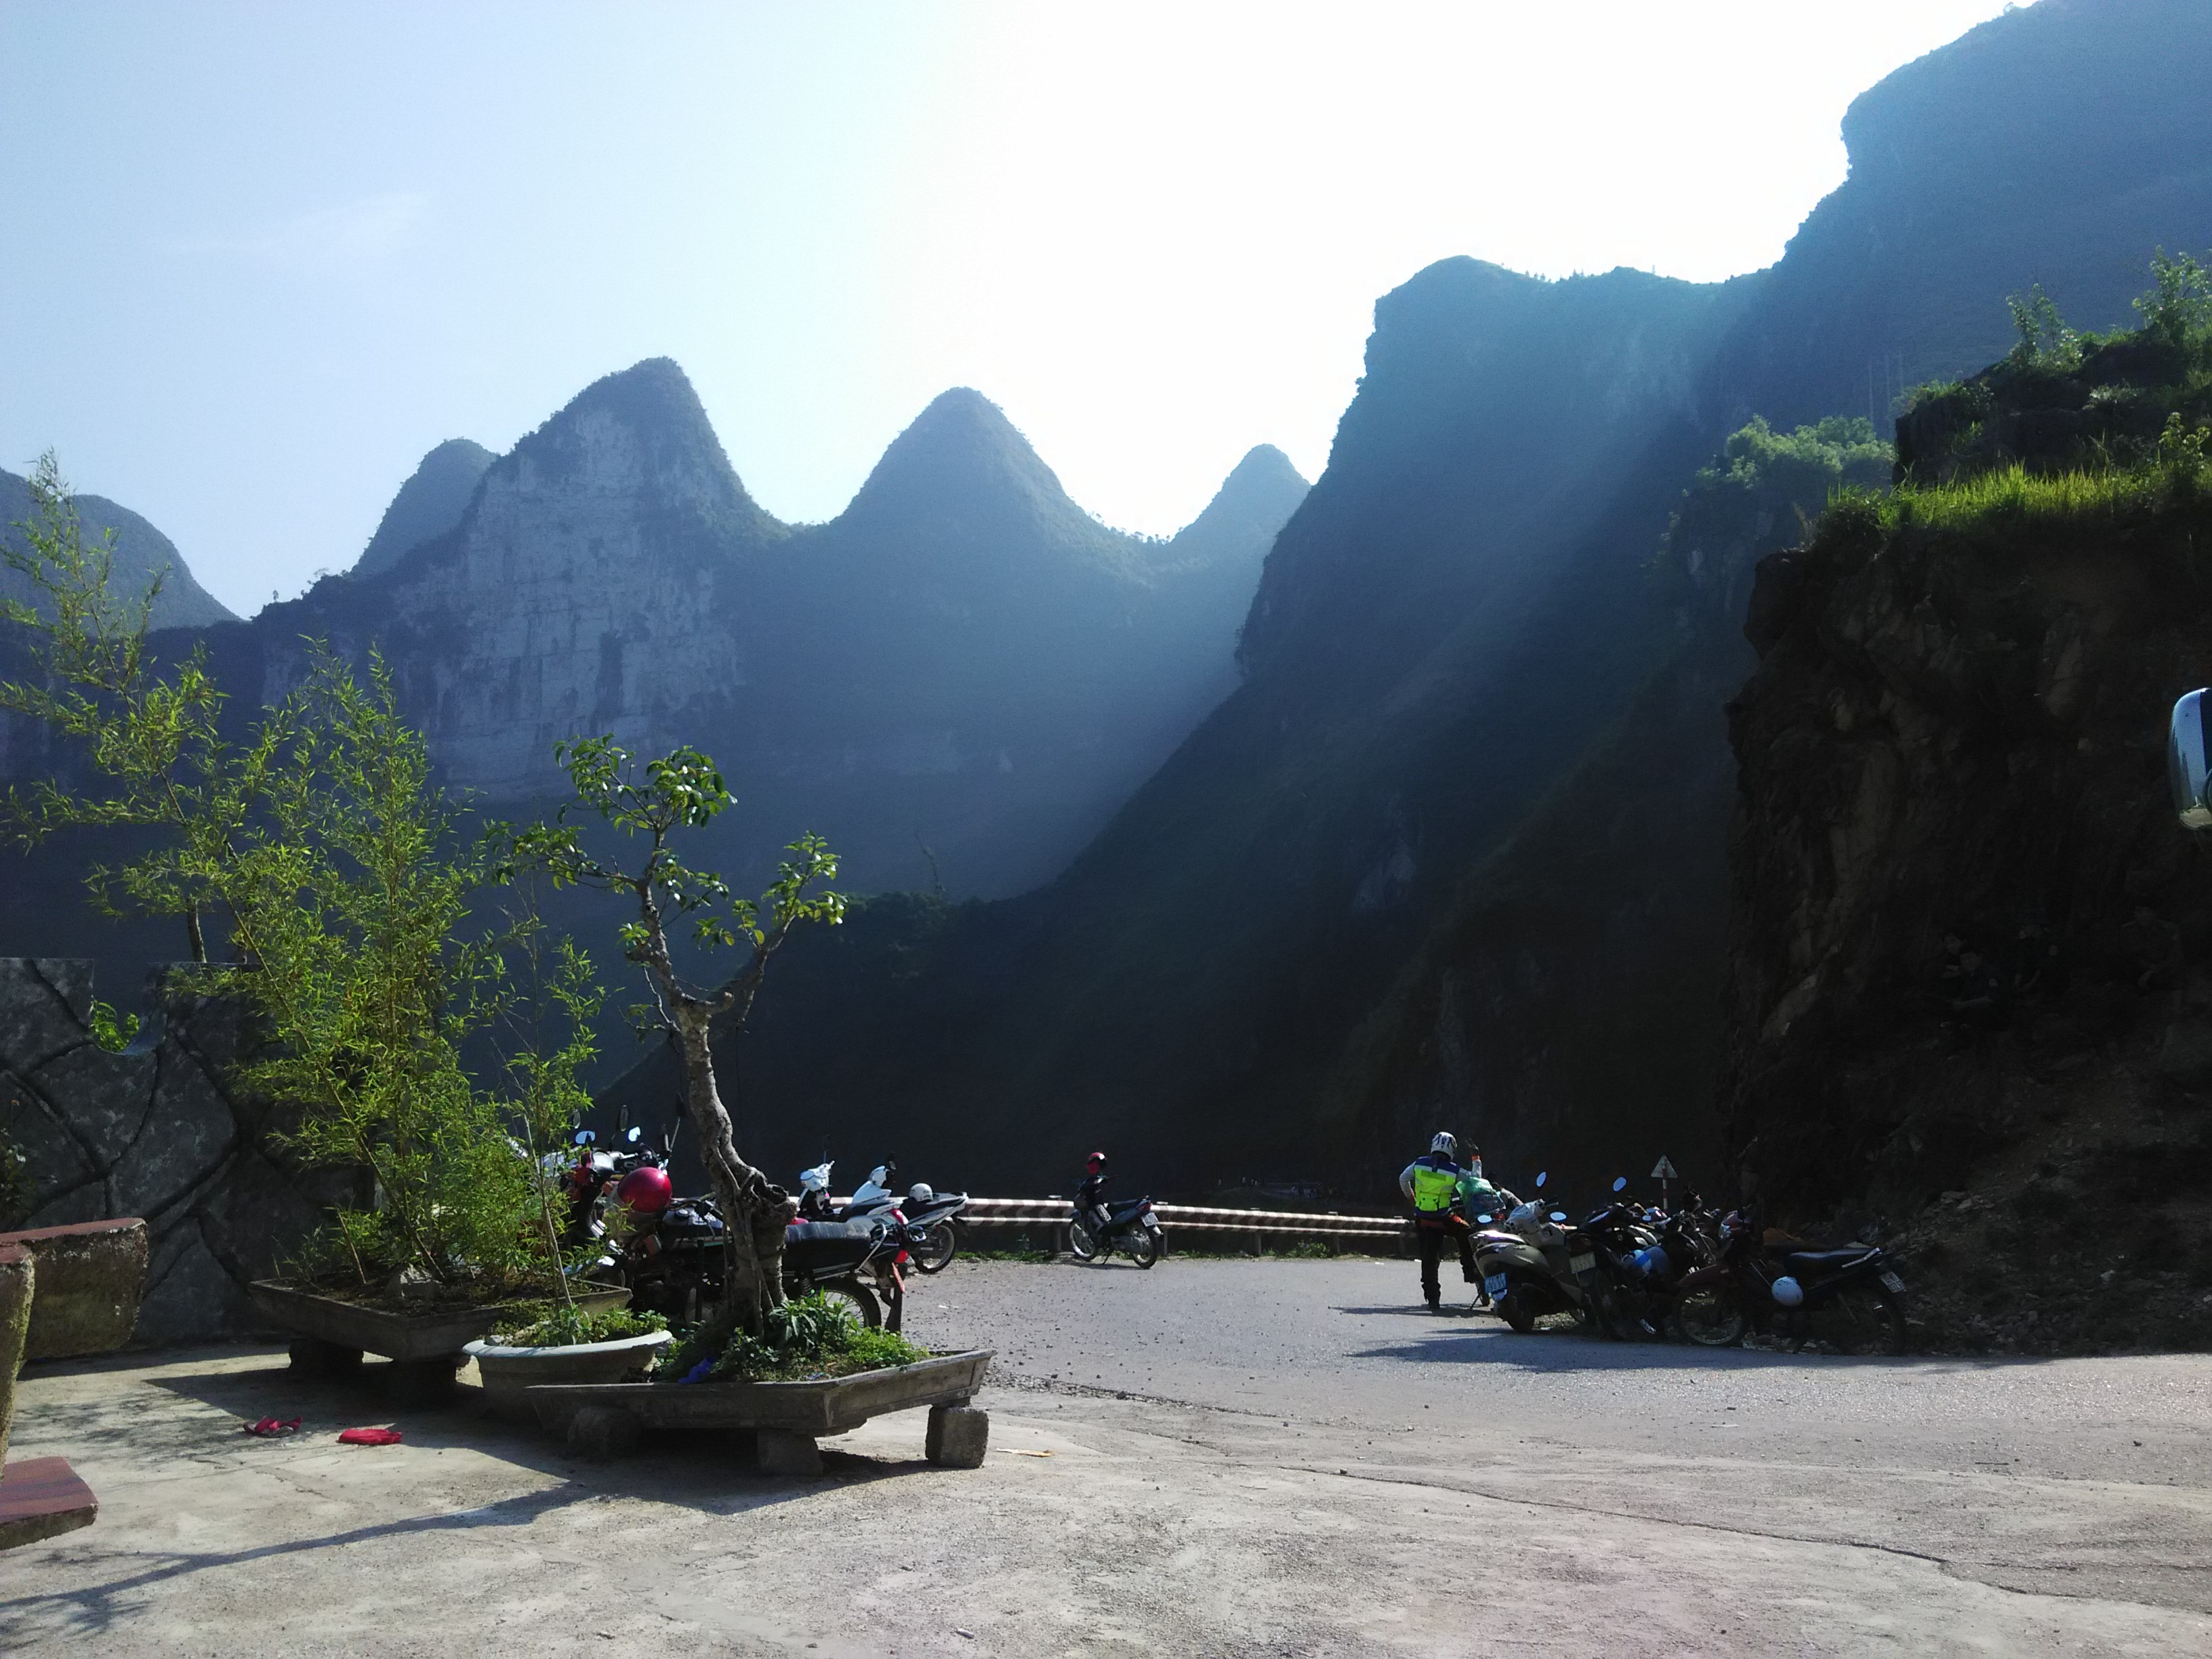 The Best Motorbike Tour in Southeast Asia 22 Days